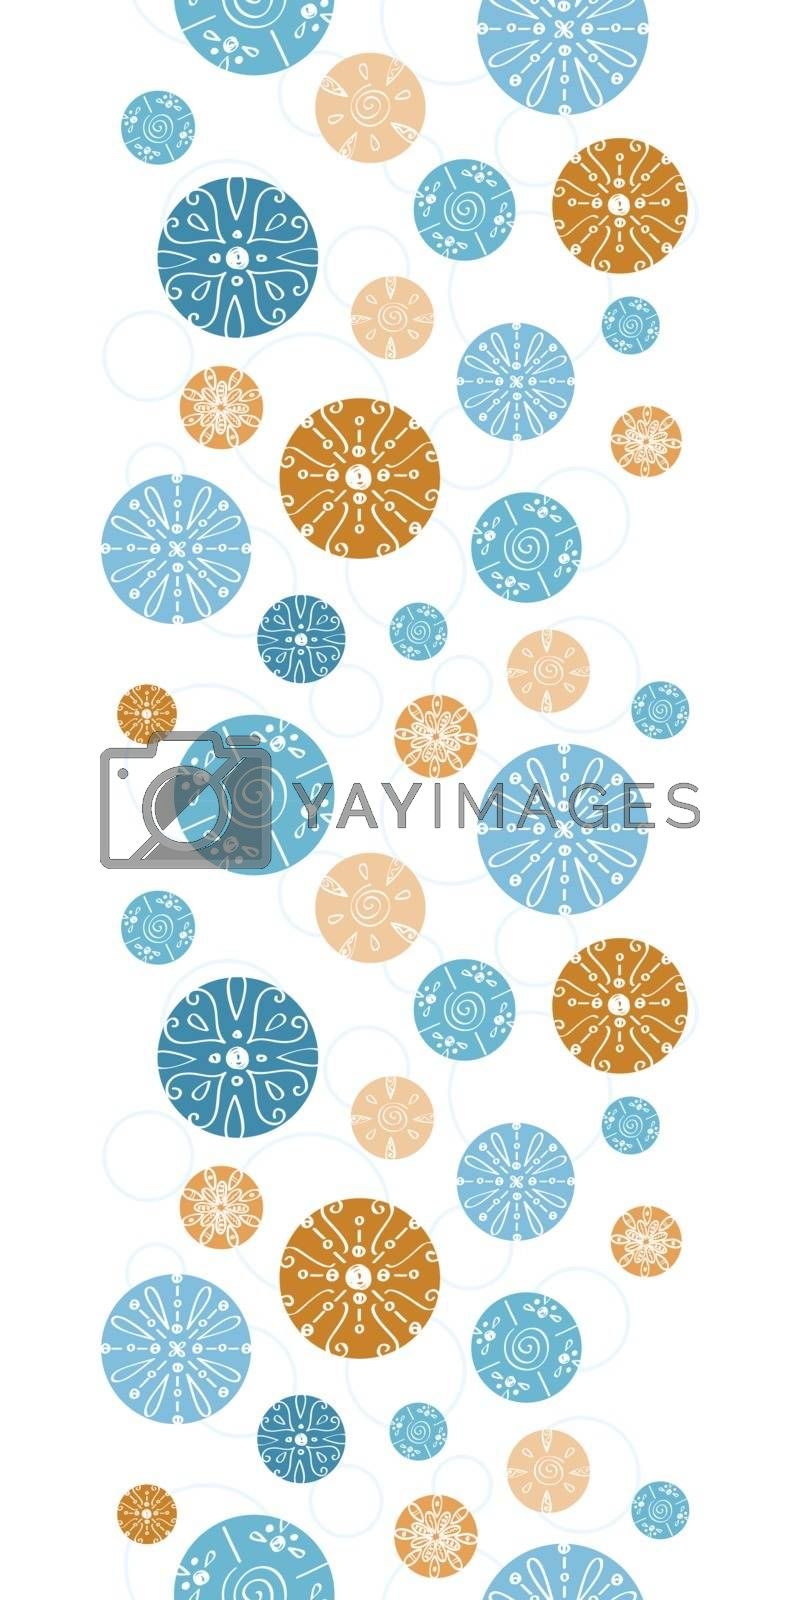 Vector abstract blue brown vintage circles back vertical border seamless pattern background graphic design